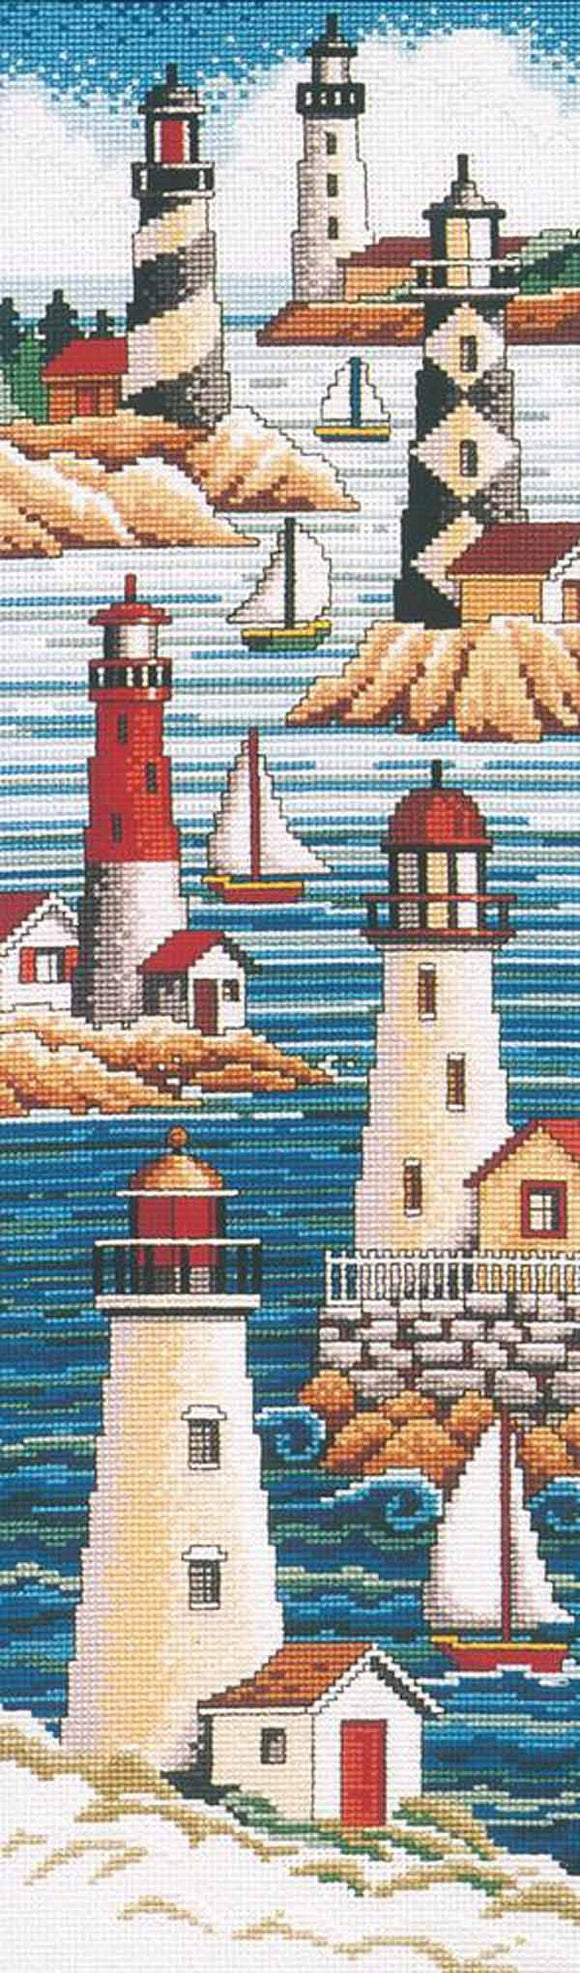 Lighthouses Cross Stitch Kit by Janlynn